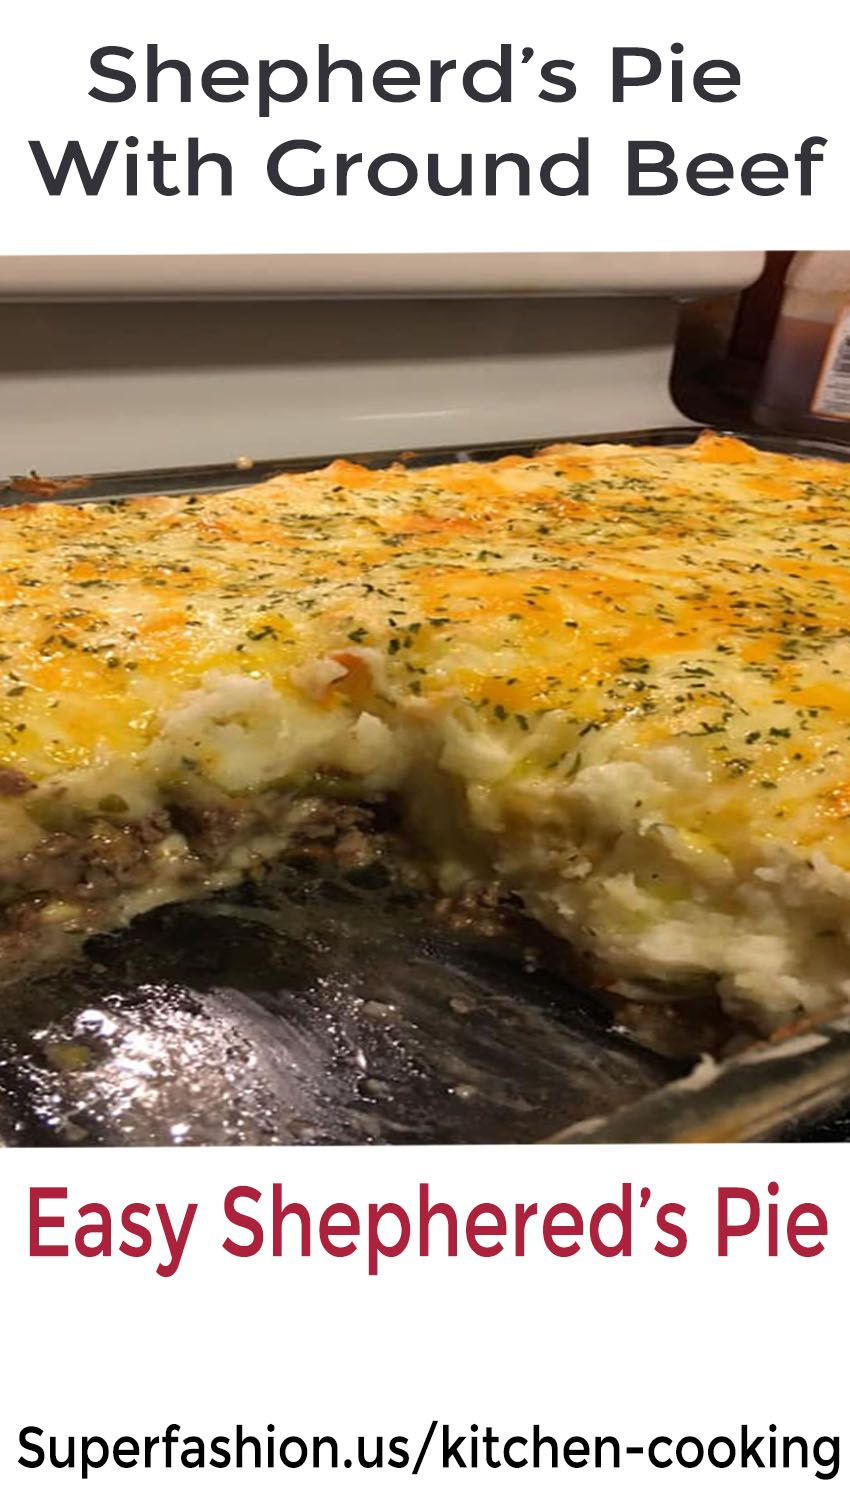 Shepherd S Pie With Ground Beef Superfashion Us Shepherds Pie Recipe Easy Shepherds Pie Recipe Shepherds Pie